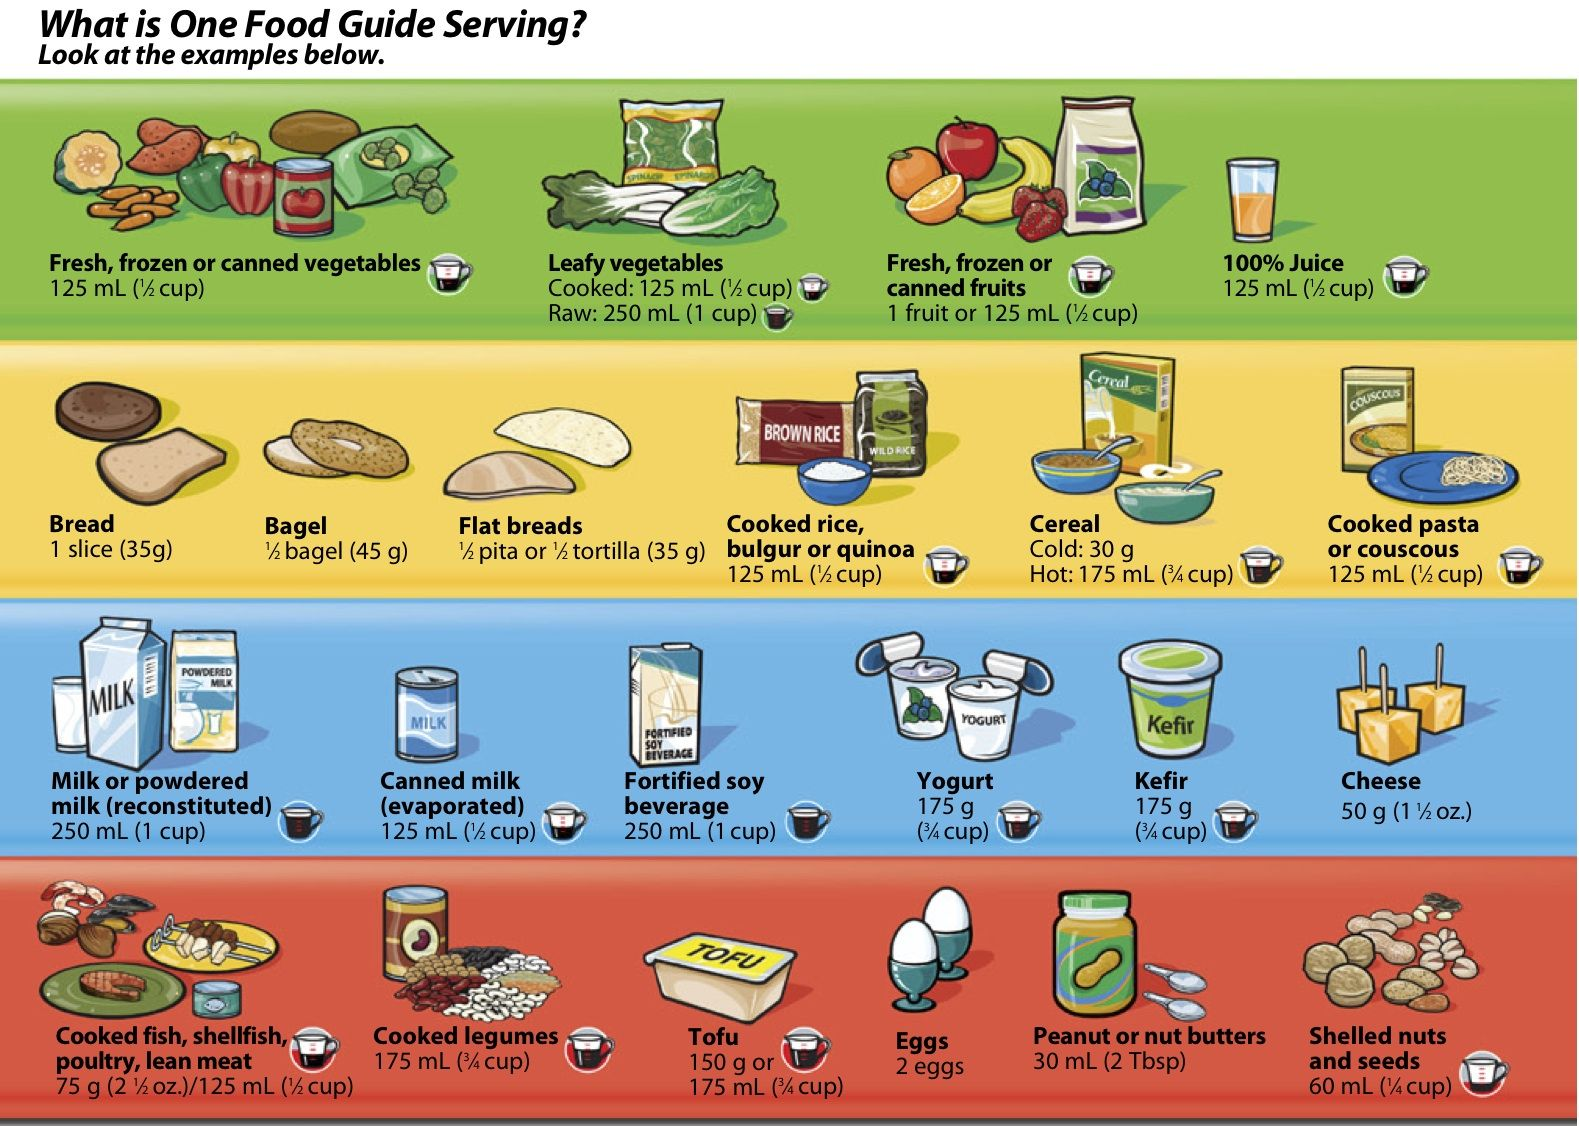 What is a foodguide serving? Canada food guide, Food